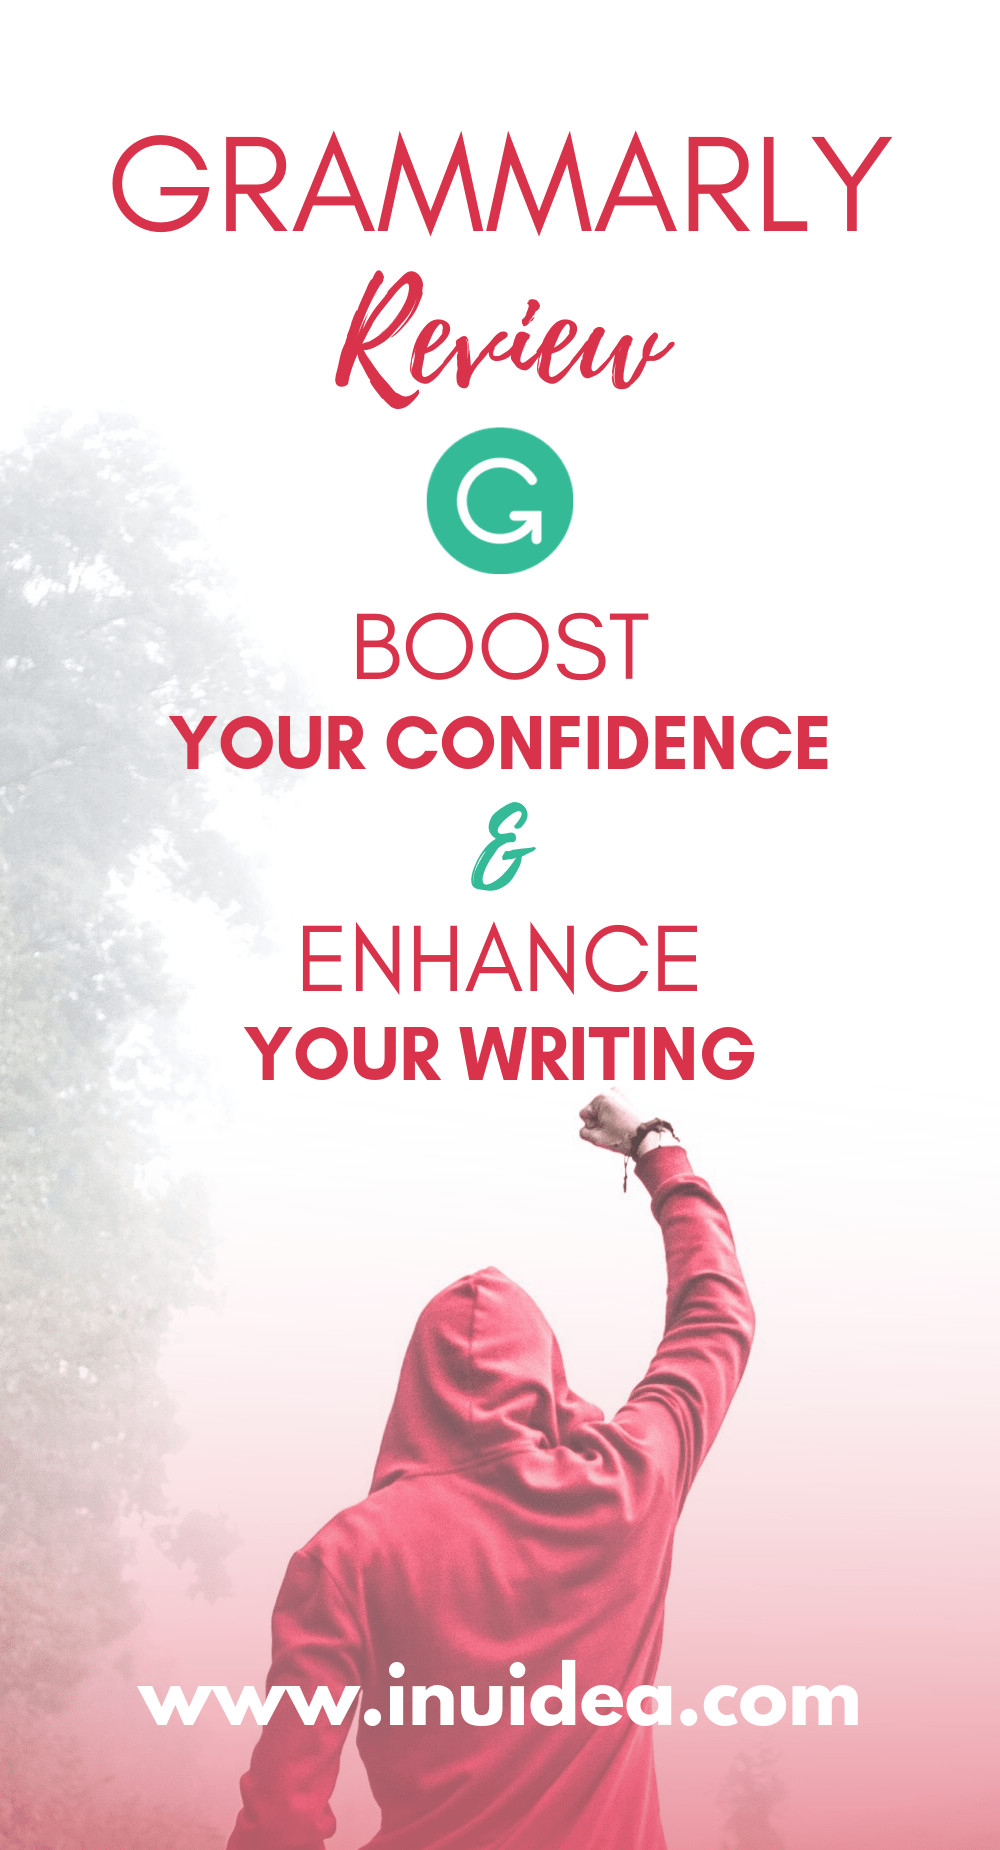 Grammarly Review - Boost Your Confidence & Enhance Your Writing